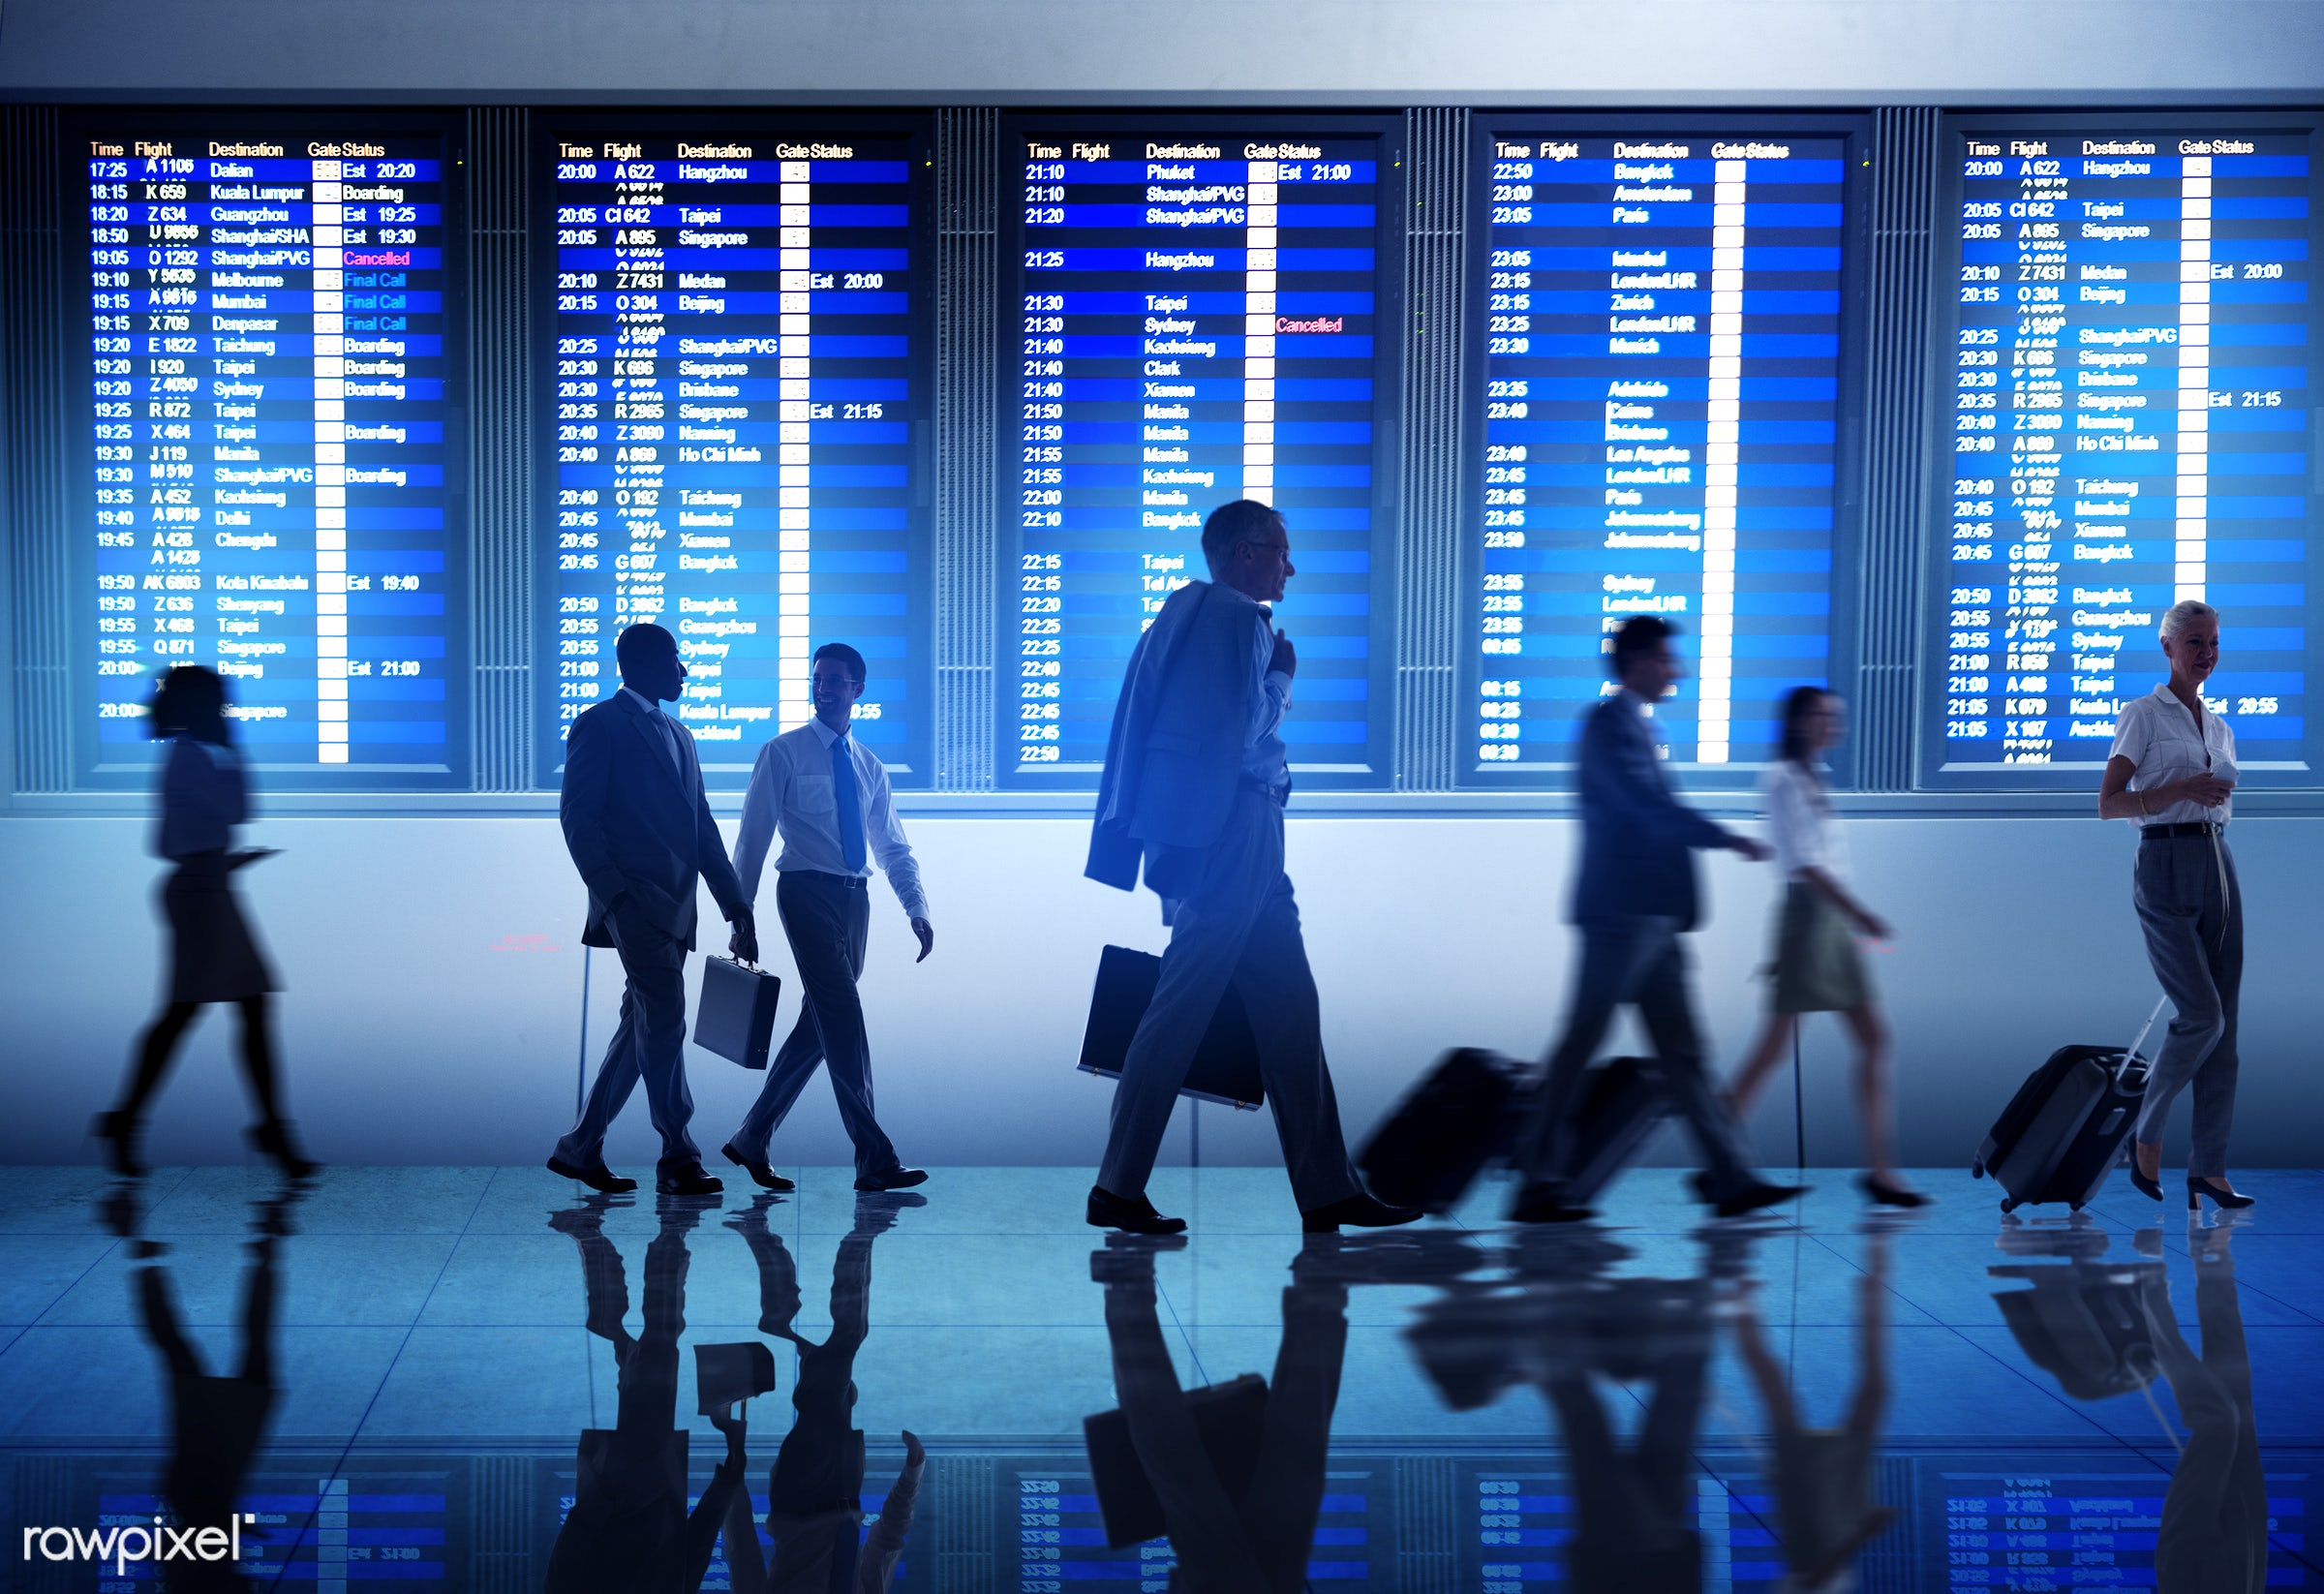 Silhouette of business people in an airport - airline, airplane, airport, arrival, board, boarding, business, business...